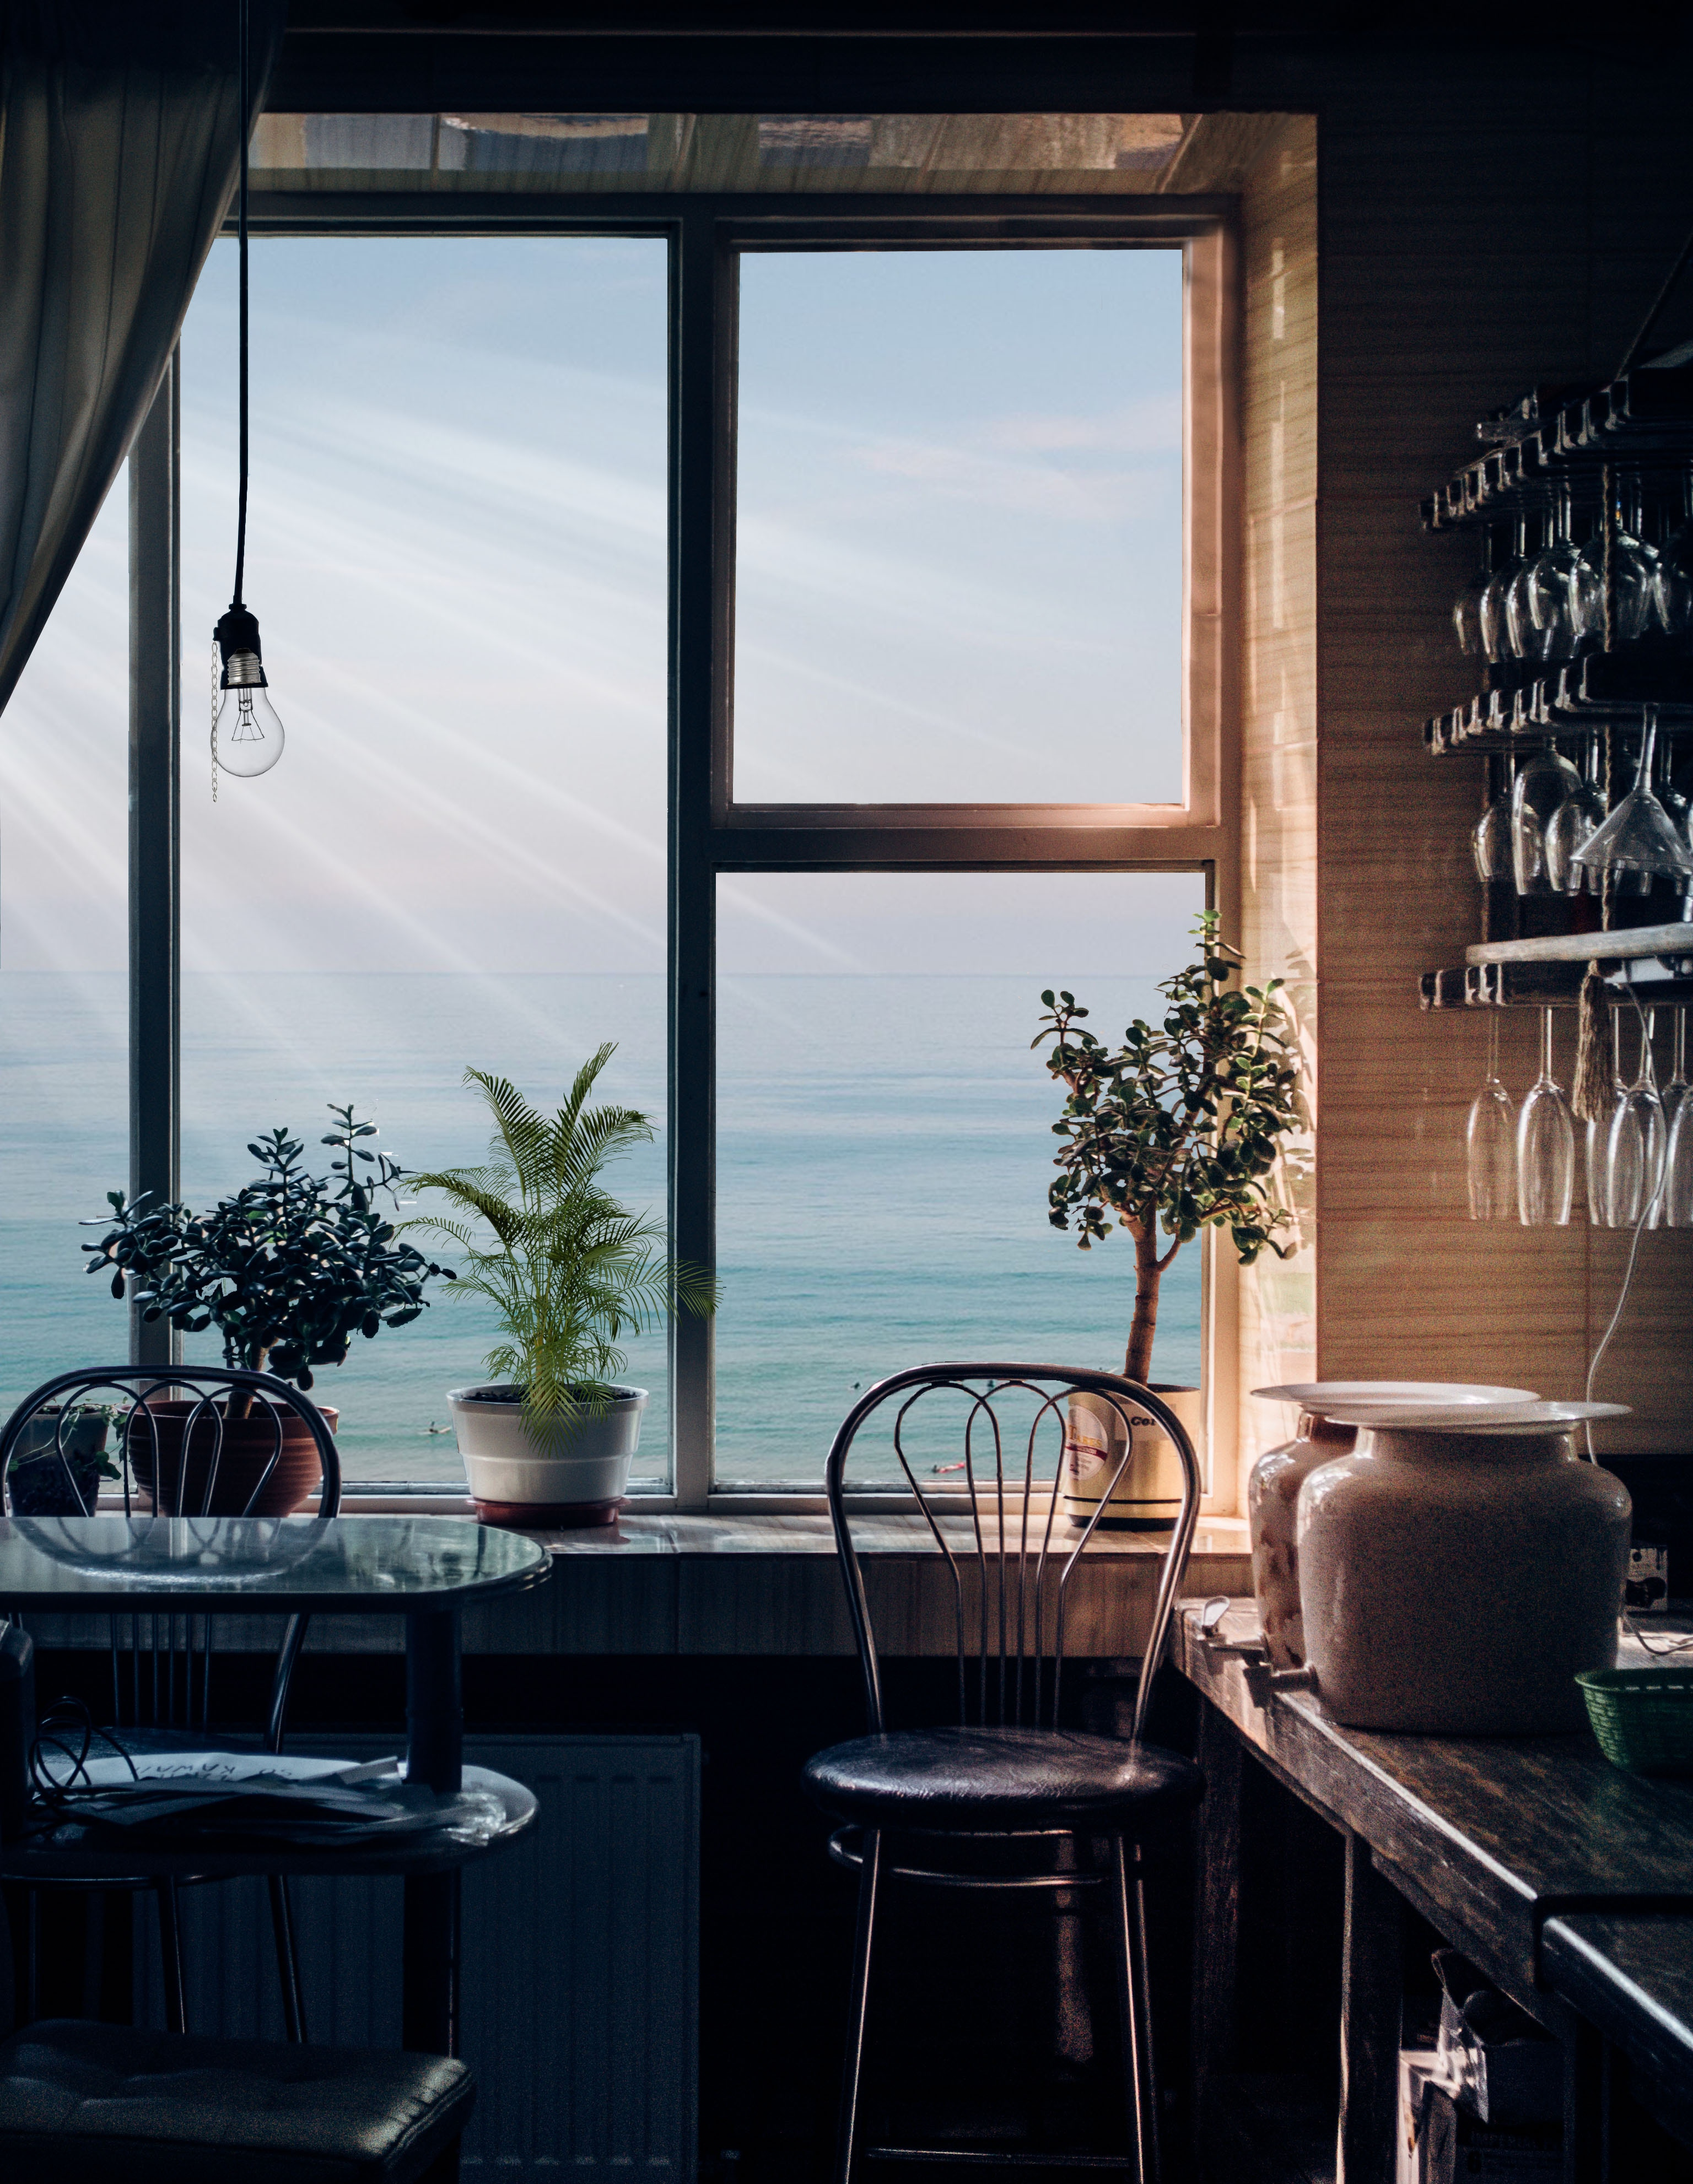 106594 download wallpaper Miscellaneous, Interior, Flowers, Miscellanea, Window, Room, View, Furniture screensavers and pictures for free